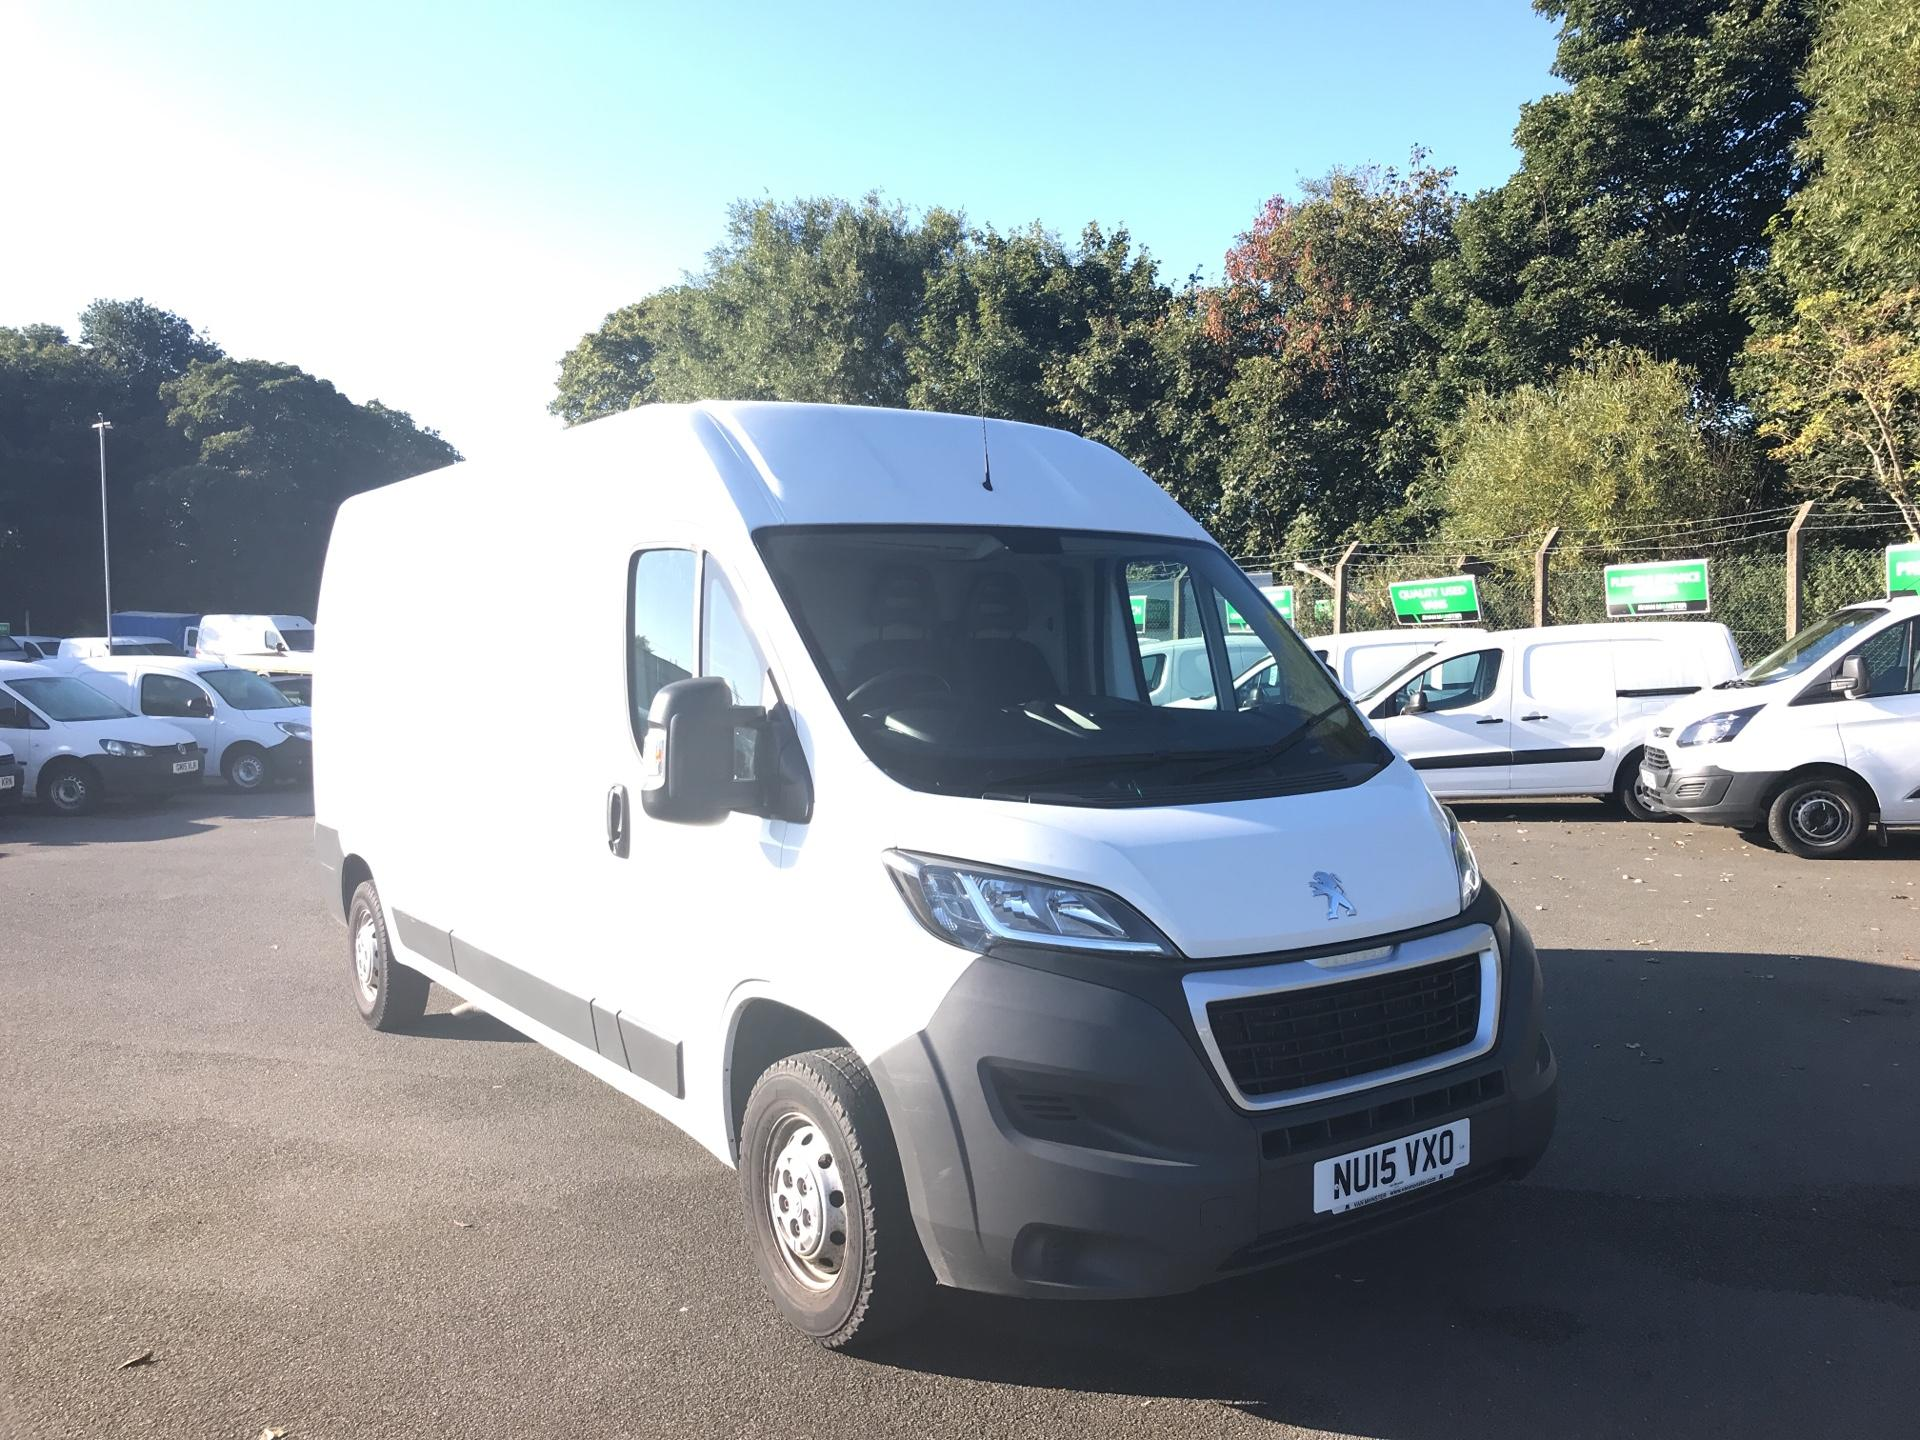 2015 Peugeot Boxer 2.2 HDI H2 VAN 130PS *VALUE RANGE VEHICLE - CONDITION REFLECTED IN PRICE* (NU15VXO)